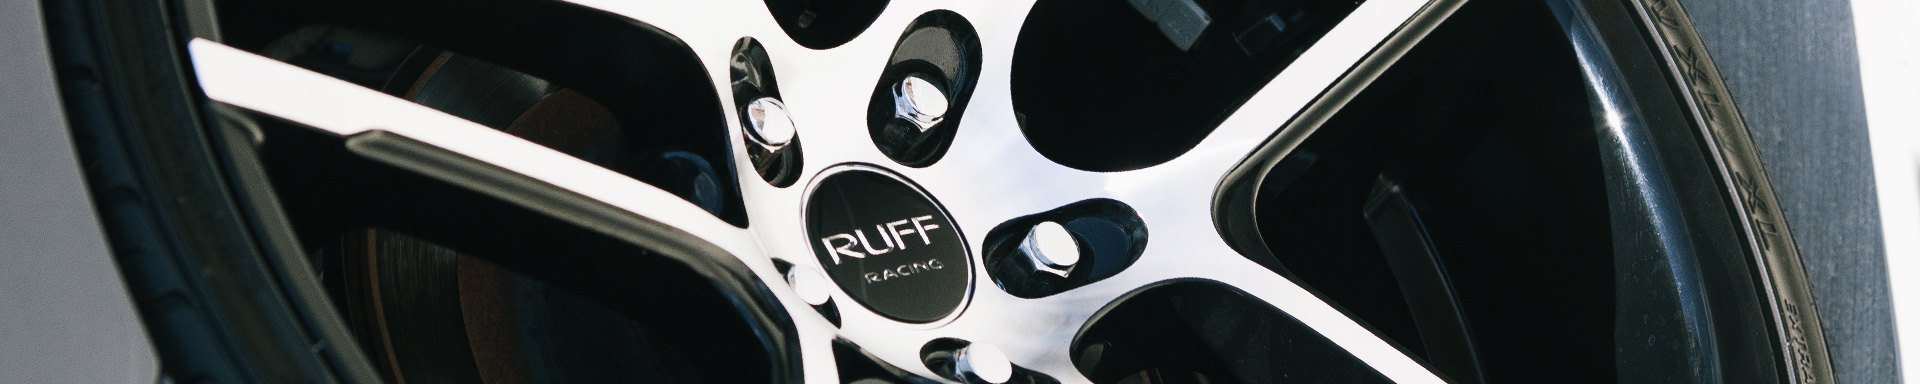 Universal RUFF RACING WHEELS & RIMS